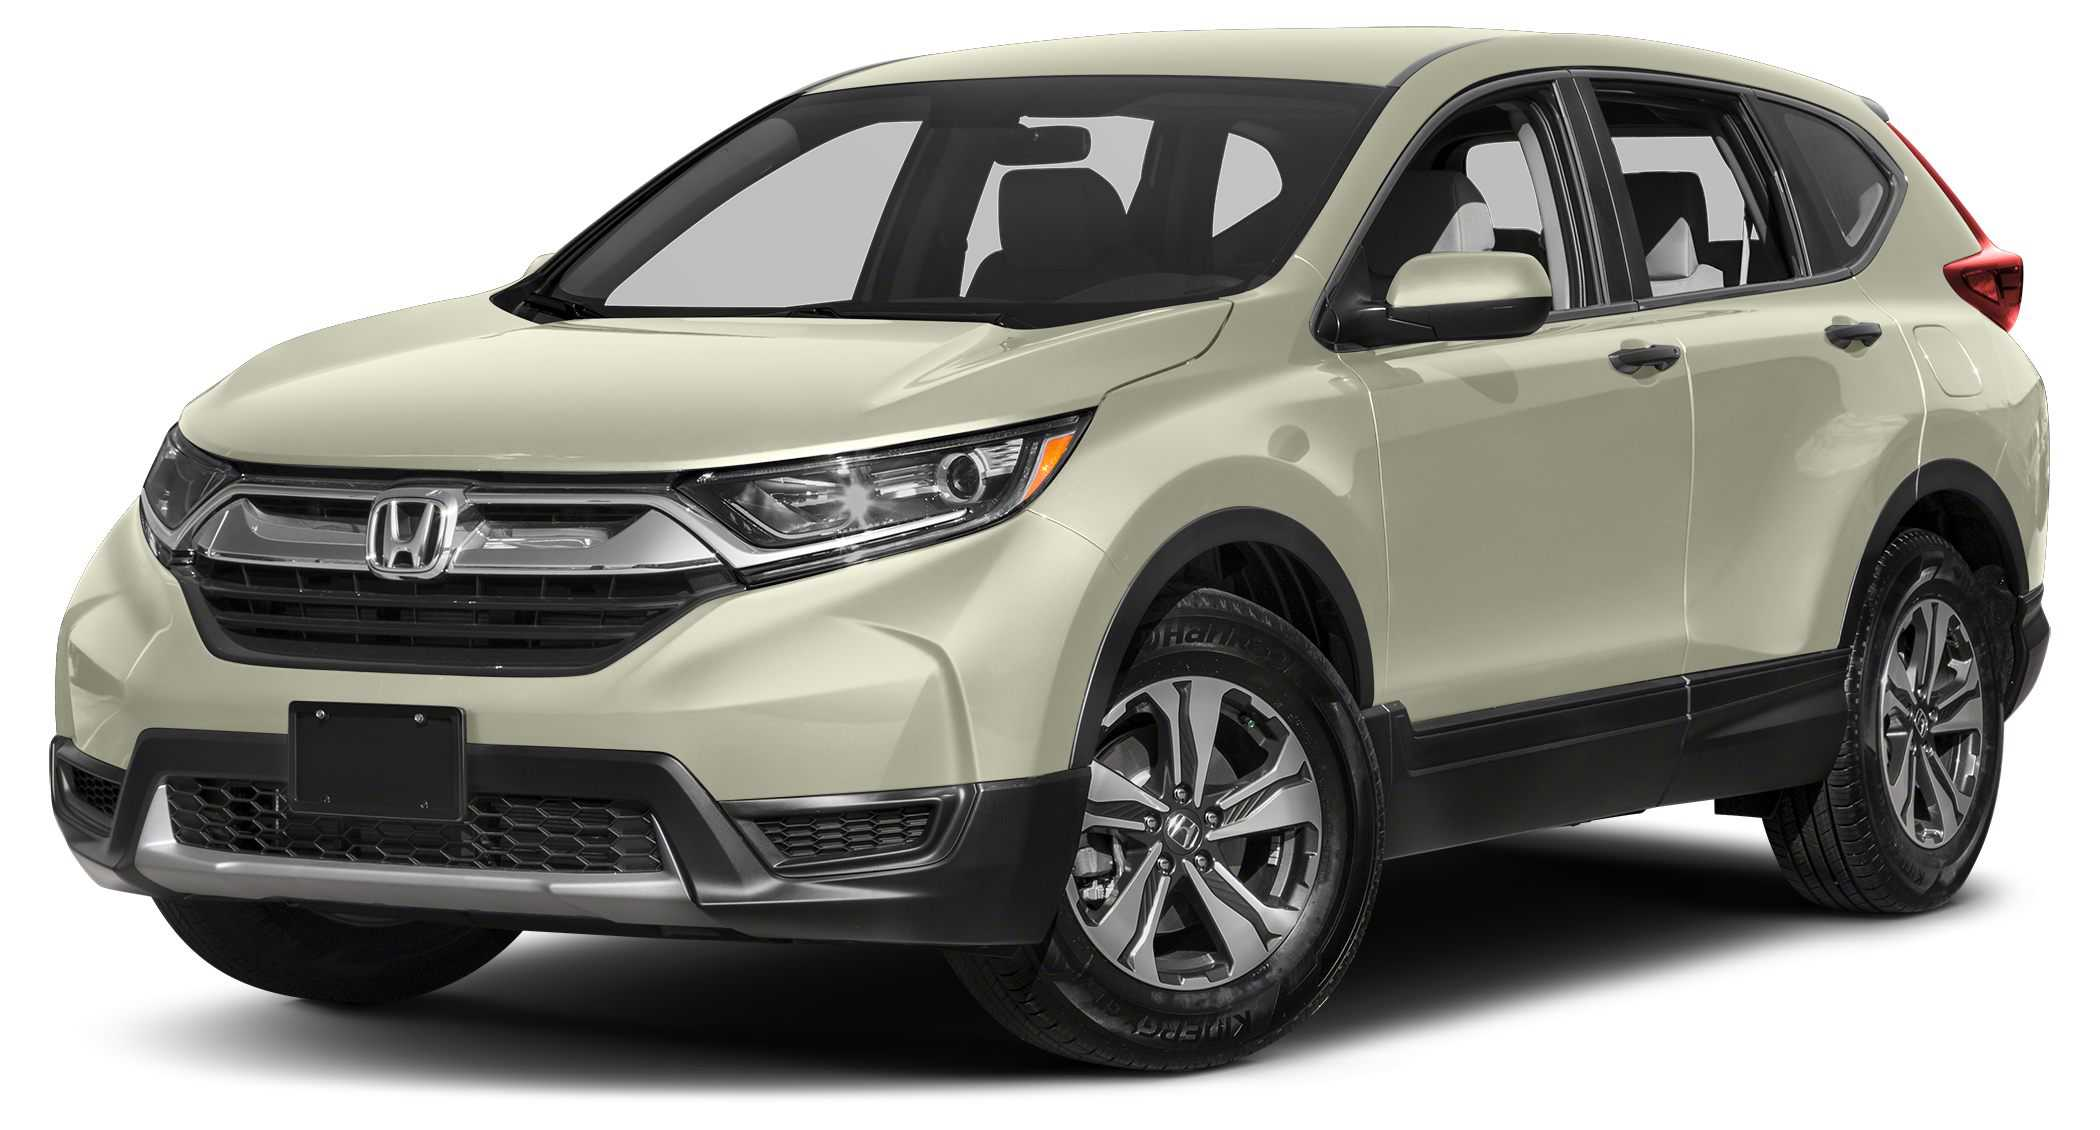 2017 honda cr v for sale in rockville md 2hkrw6h33hh209903 for Herson honda rockville